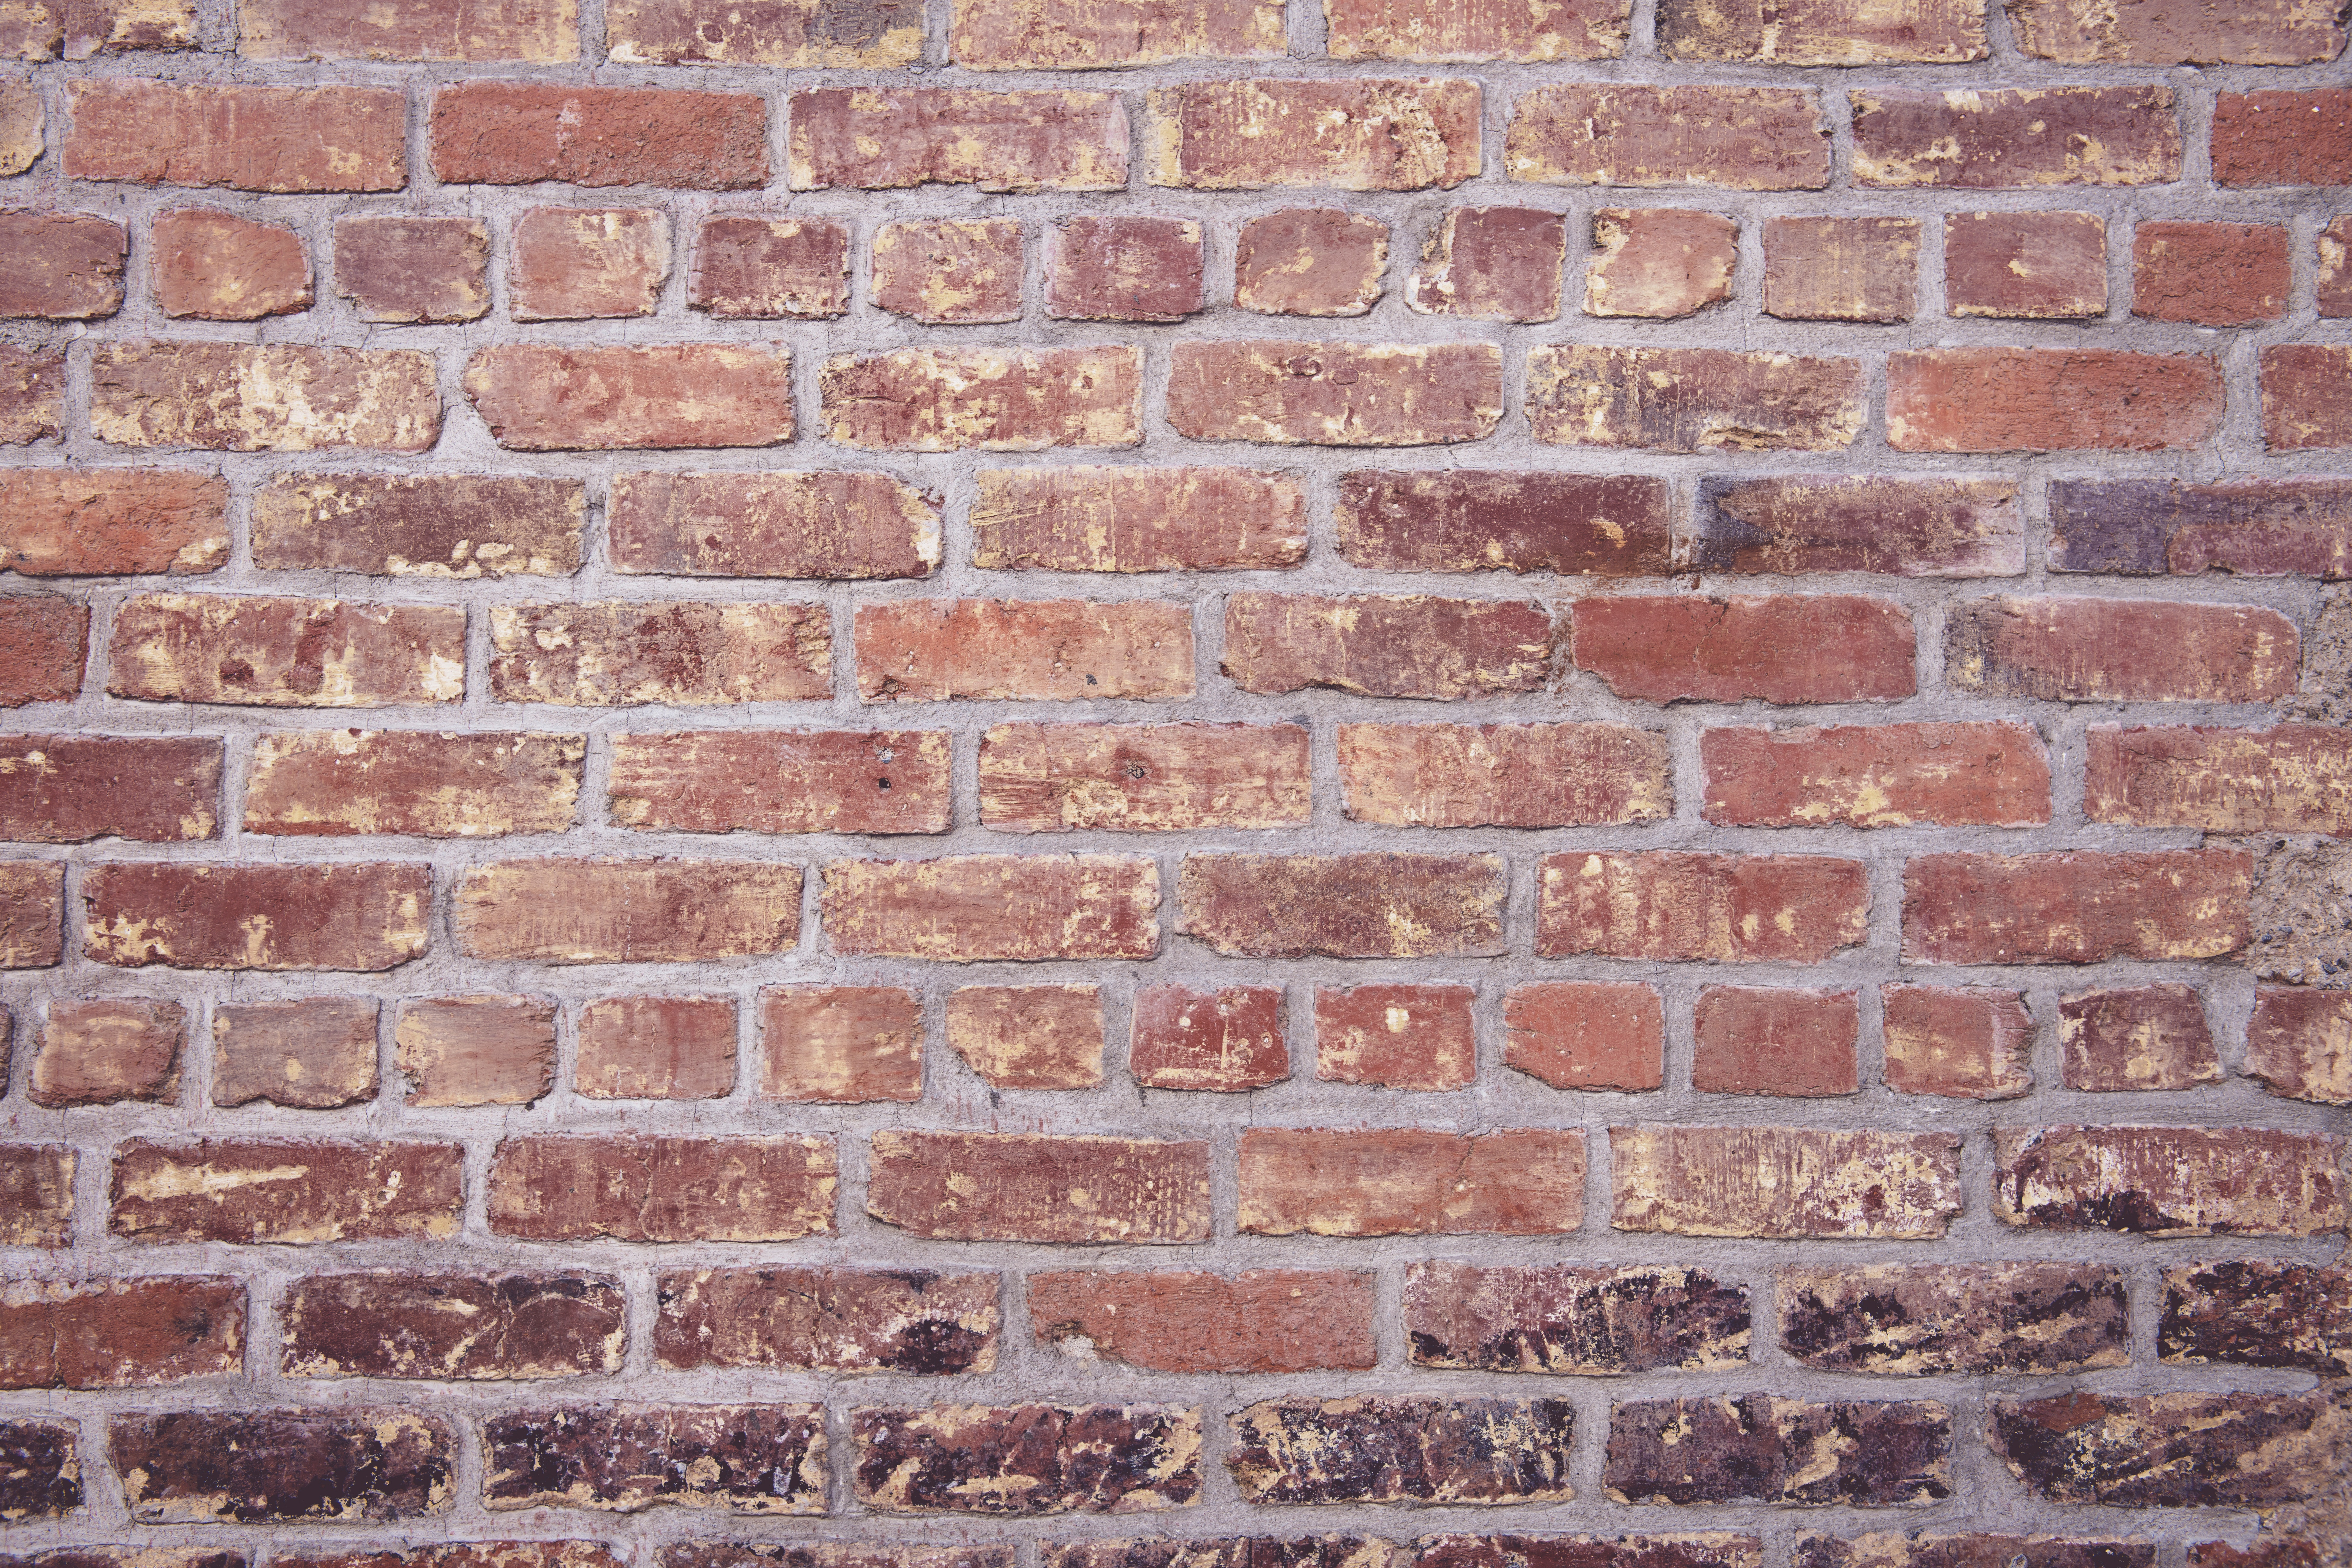 Brown Wall Cladding, Architecture, Masonry, Texture, Surface, HQ Photo